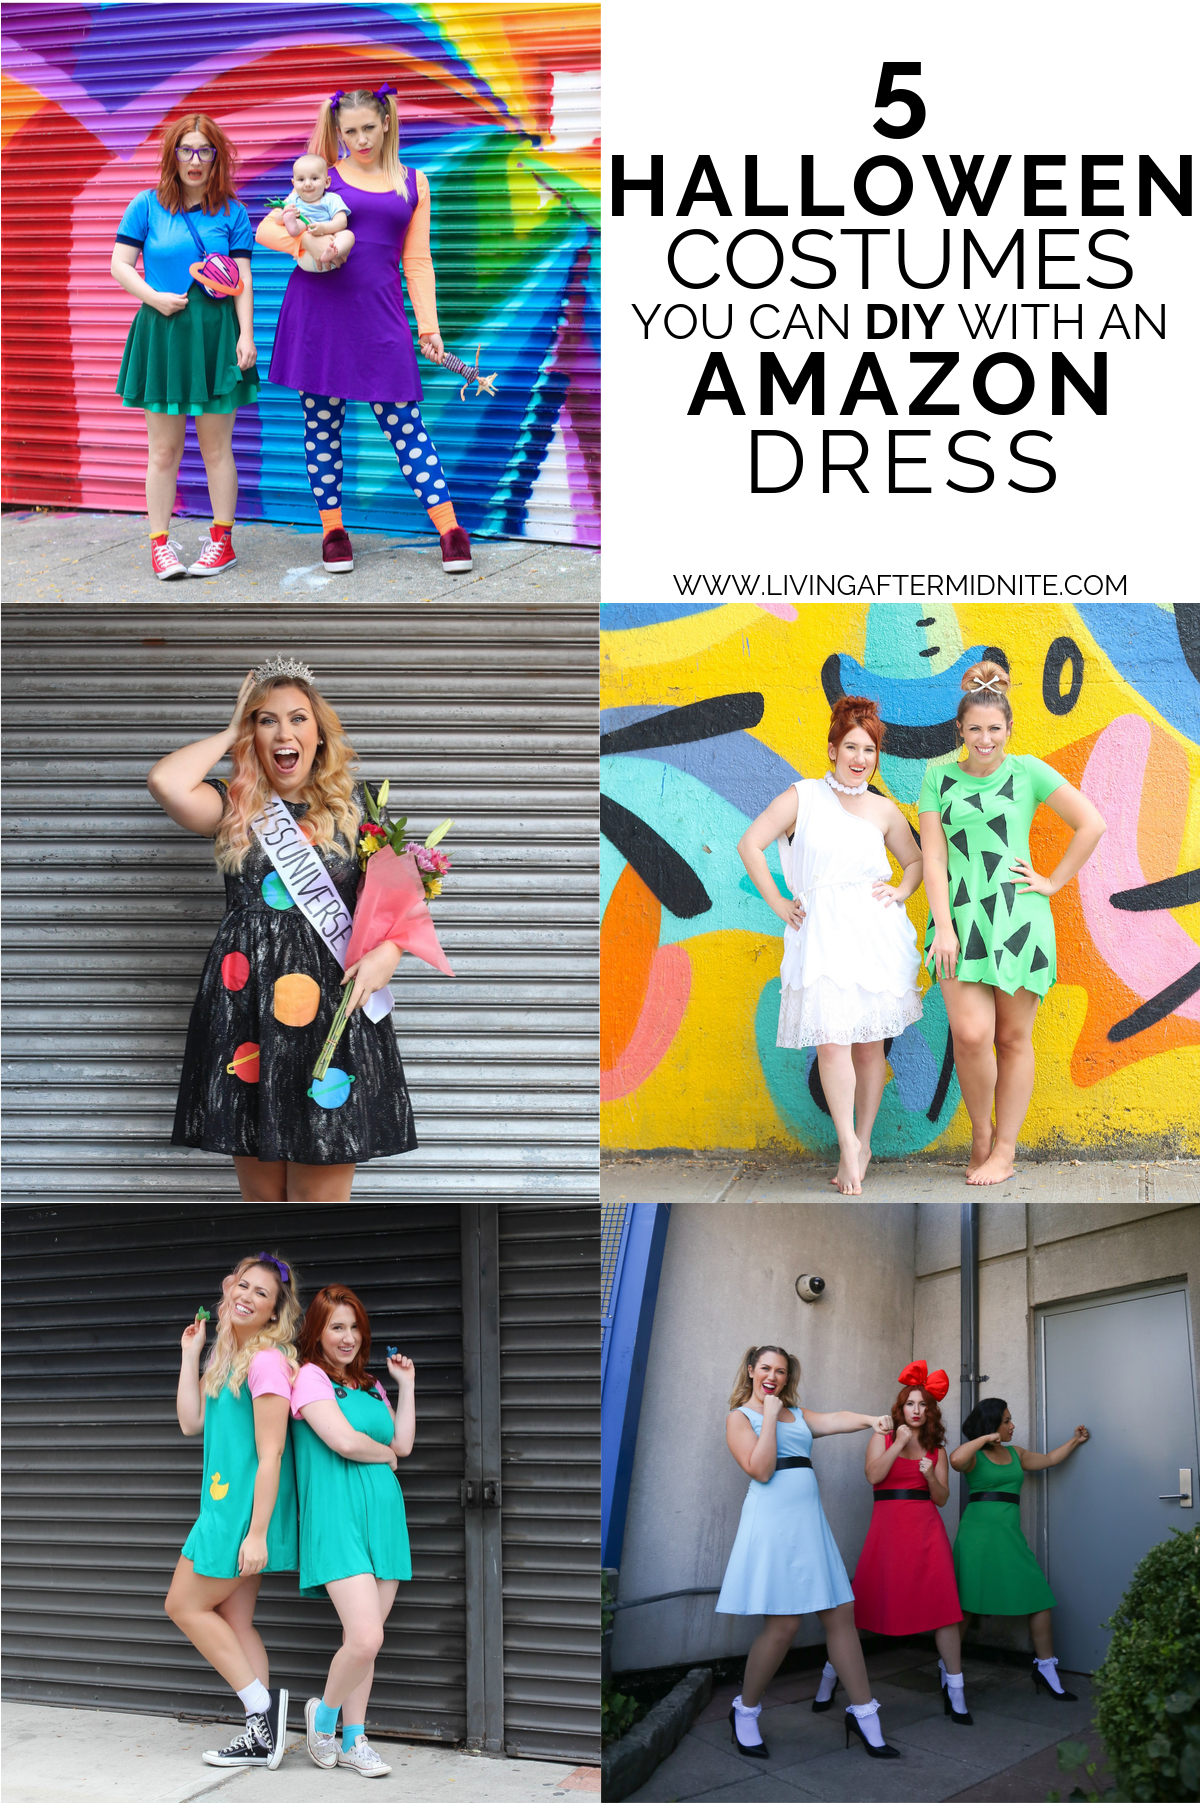 5 Costumes You Can DIY with an Amazon Dress